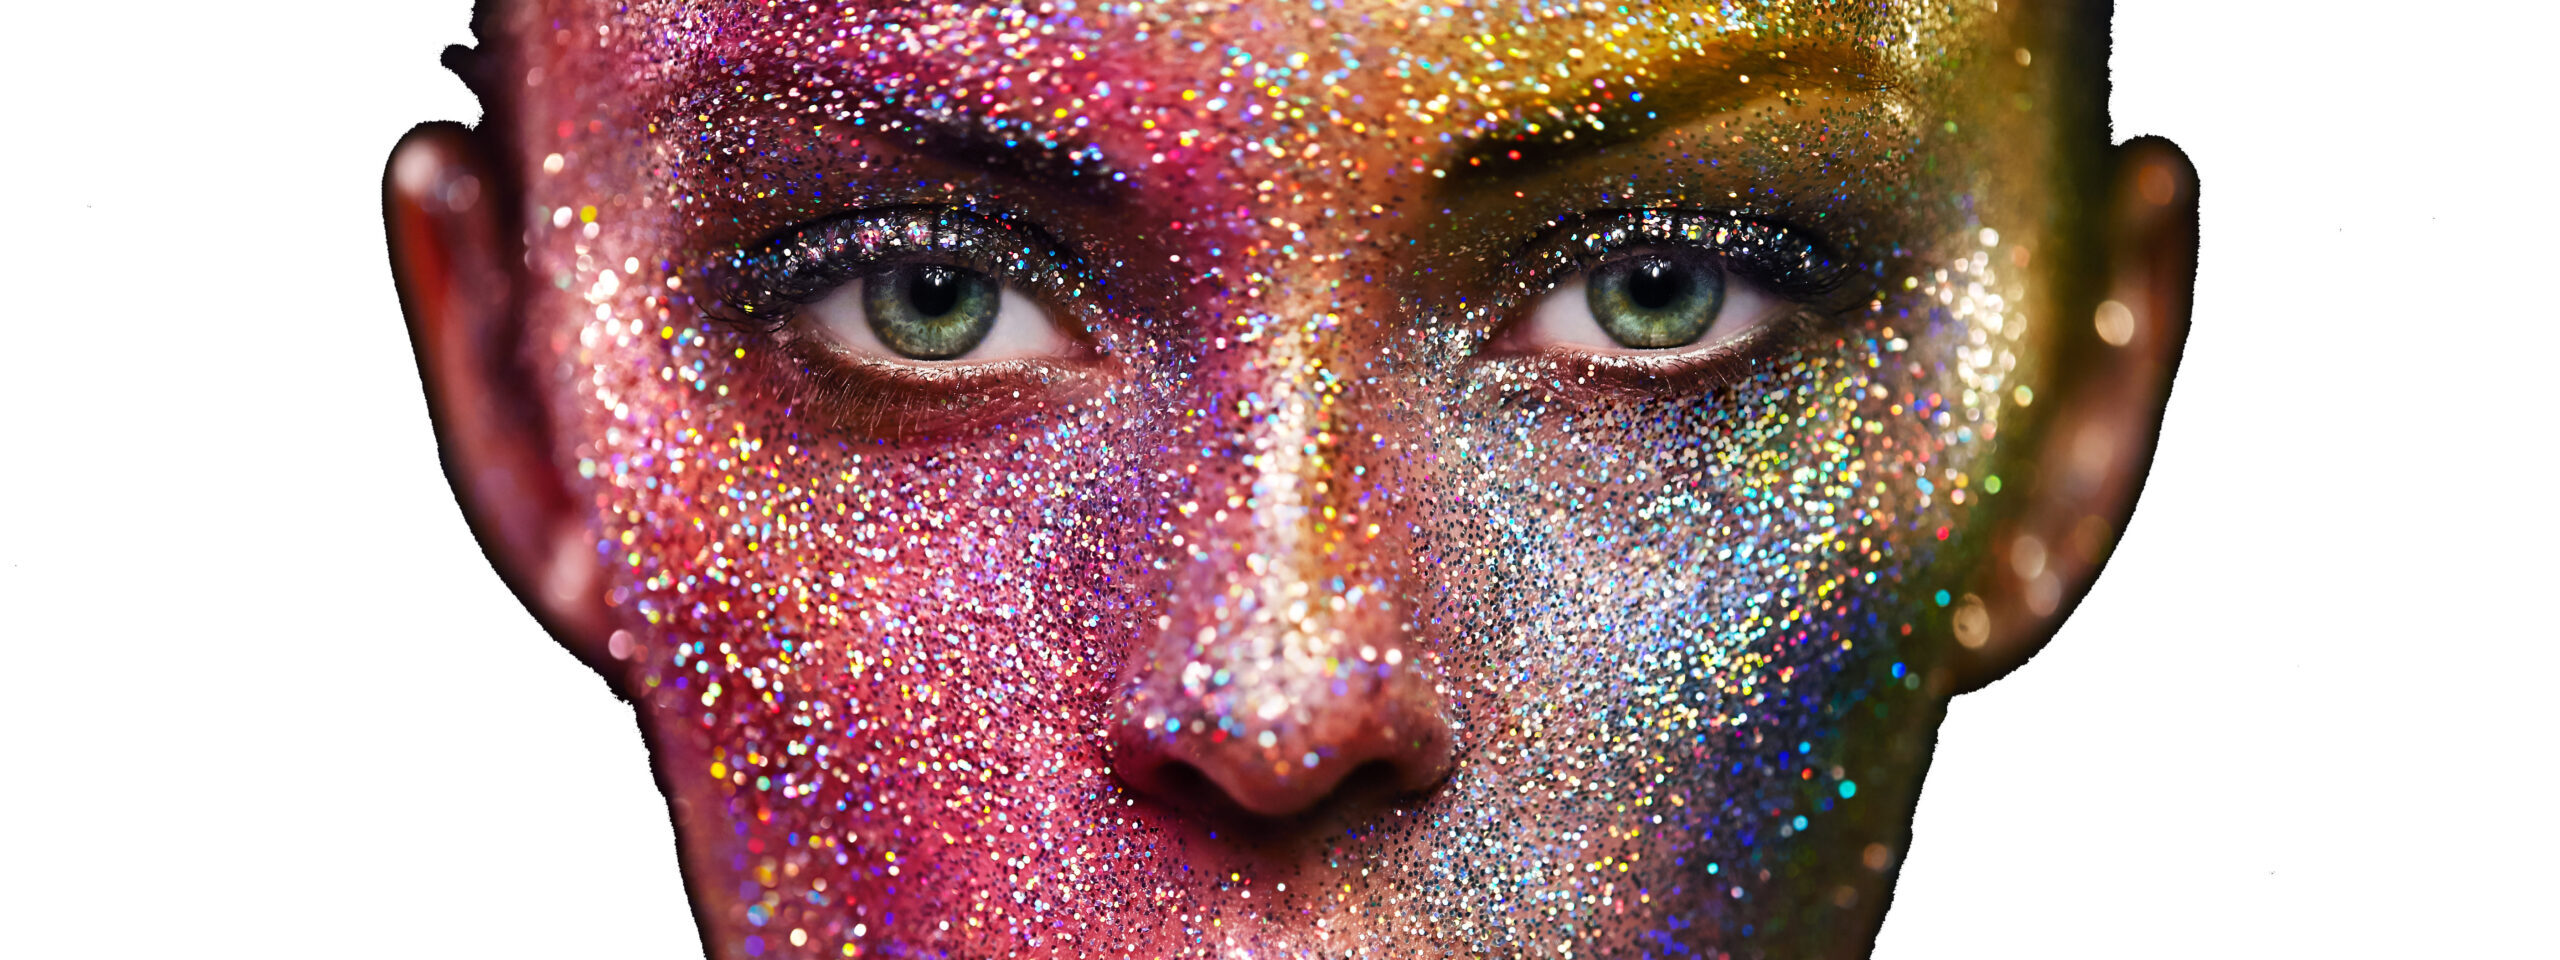 Face with Glitter - TSW herbal medicine